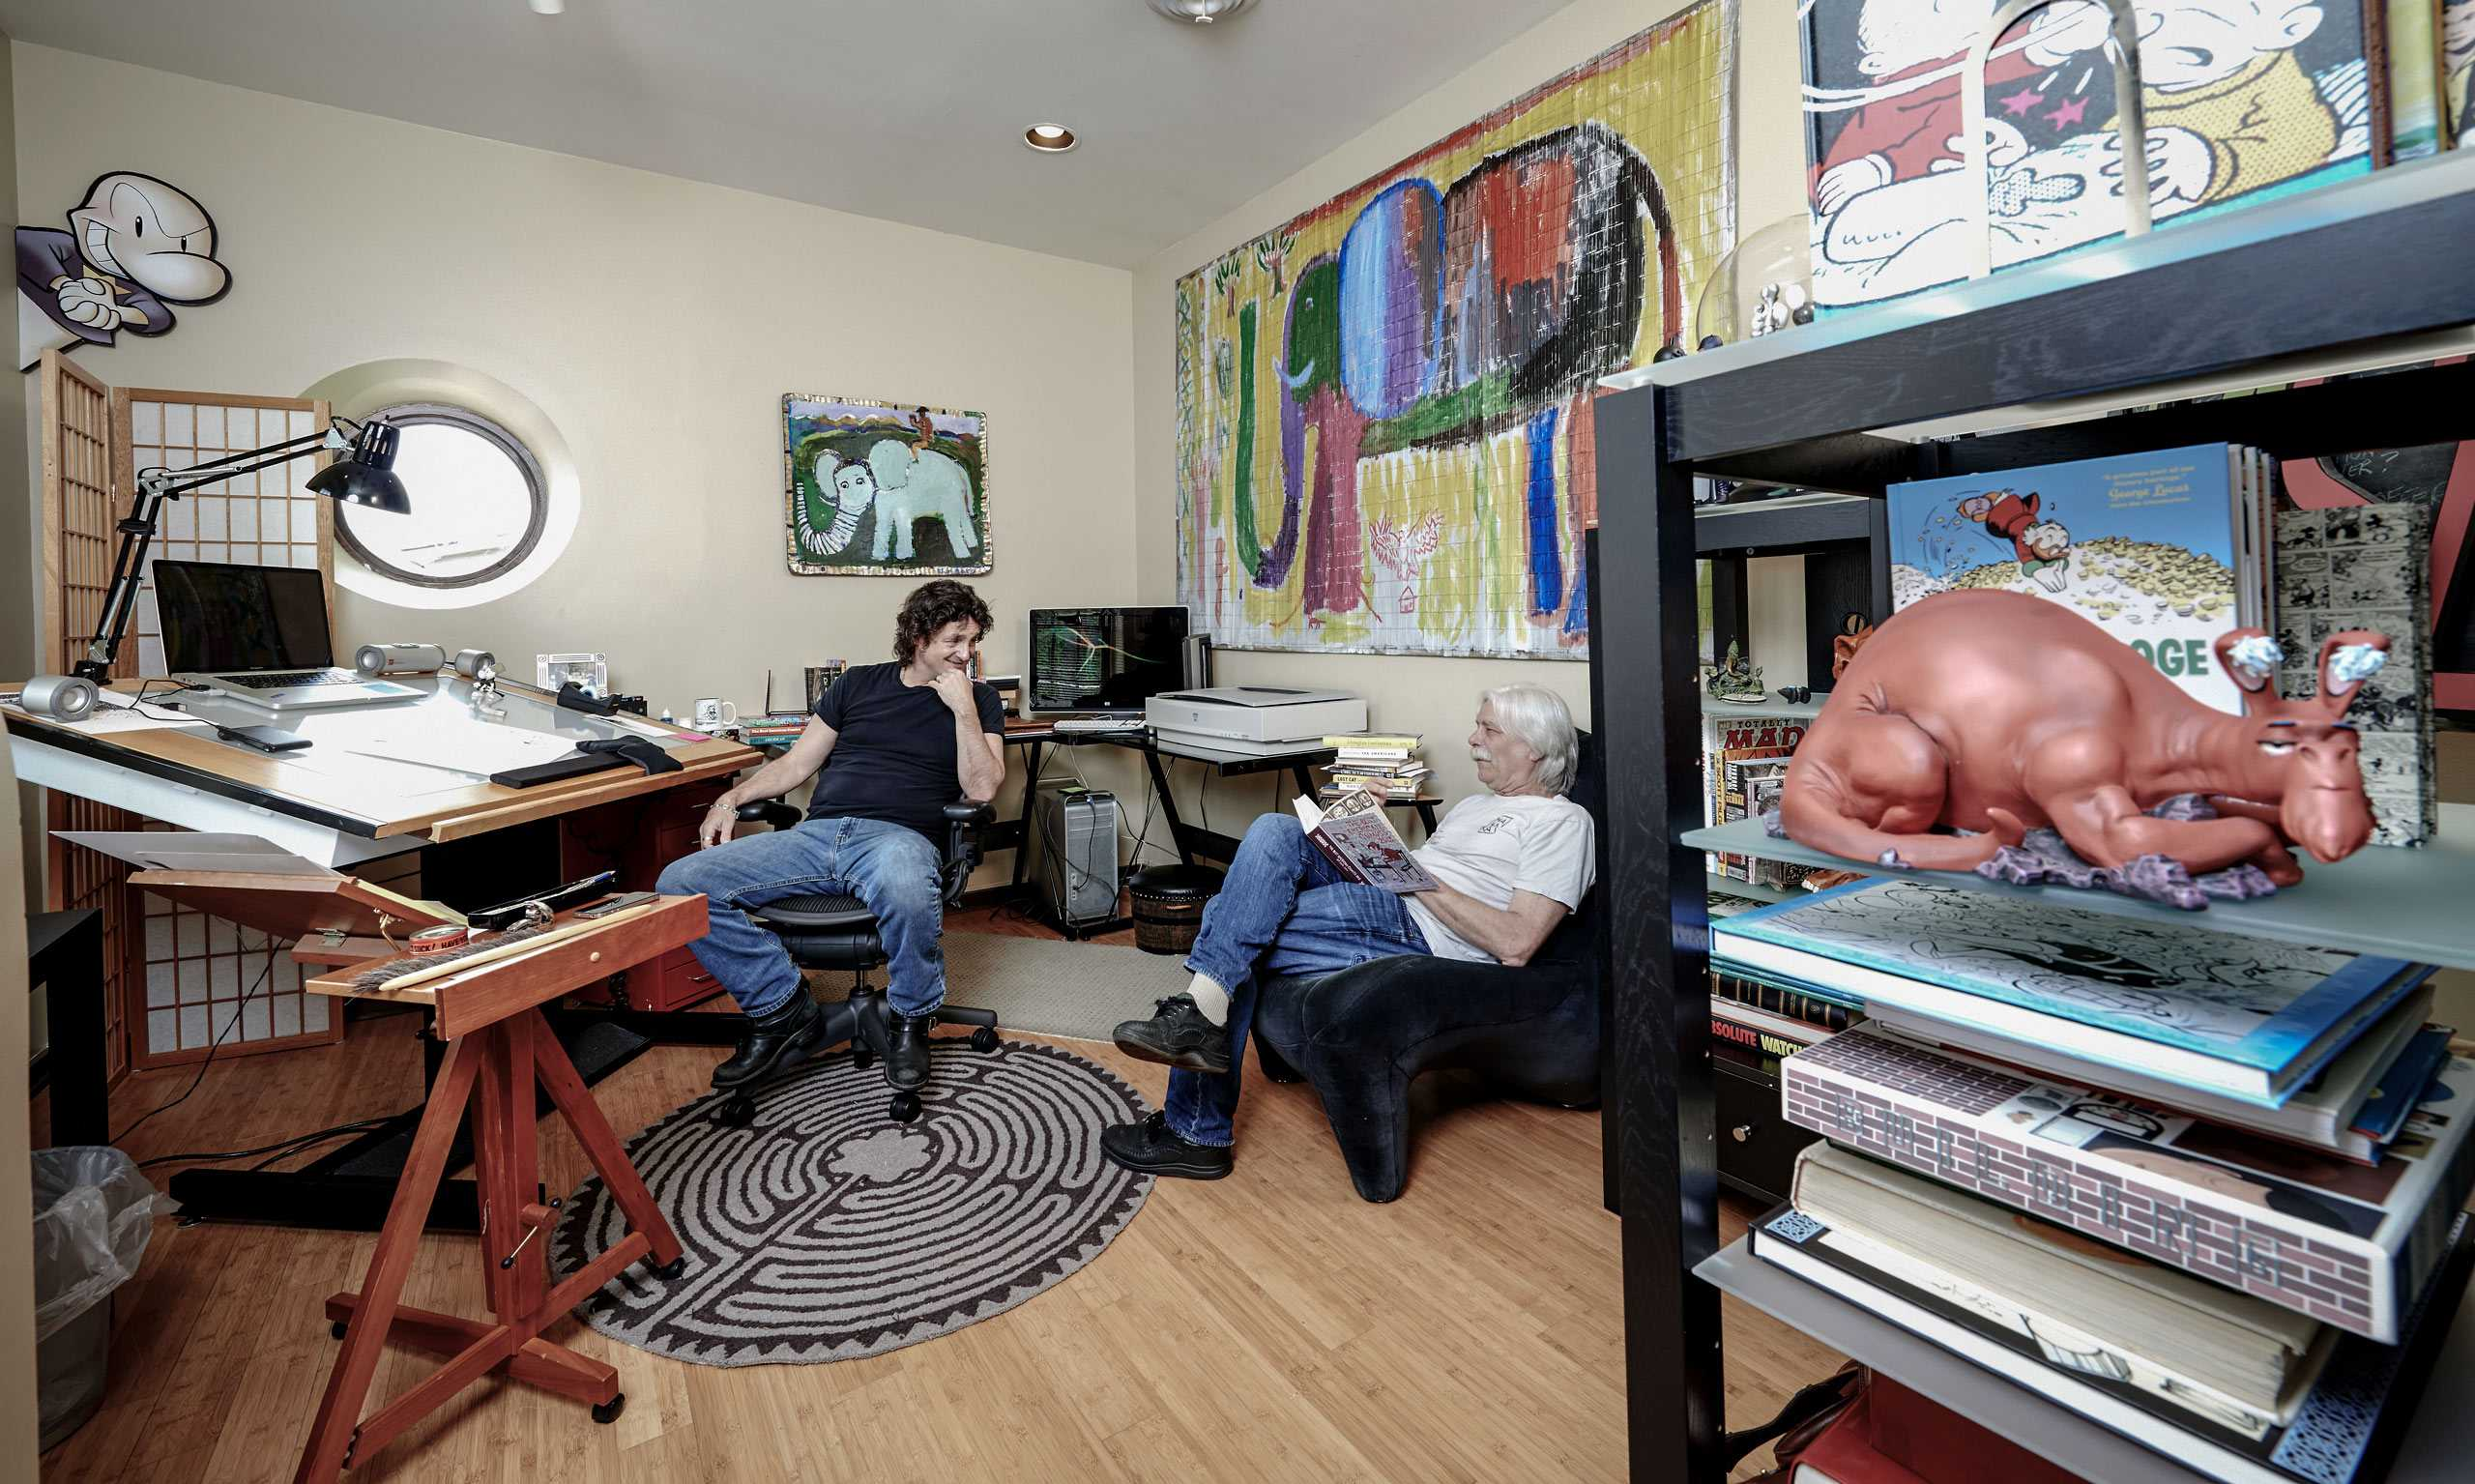 """Outtake from """"The Artist Within: Book 2 with David Scroggy and Cartoonist Jeff Smith"""